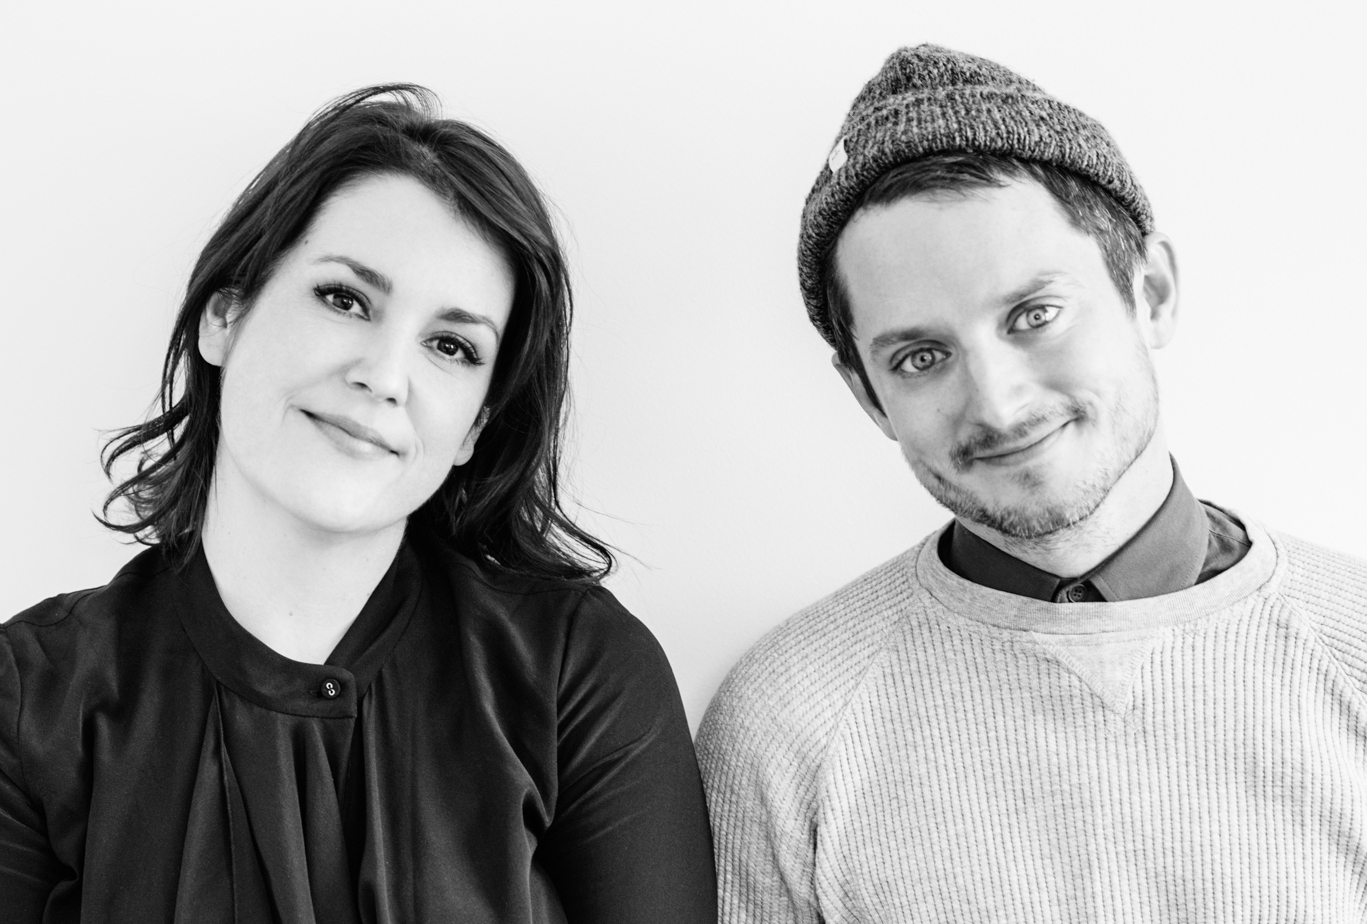 Melanie Lynskey and Elijah Wood